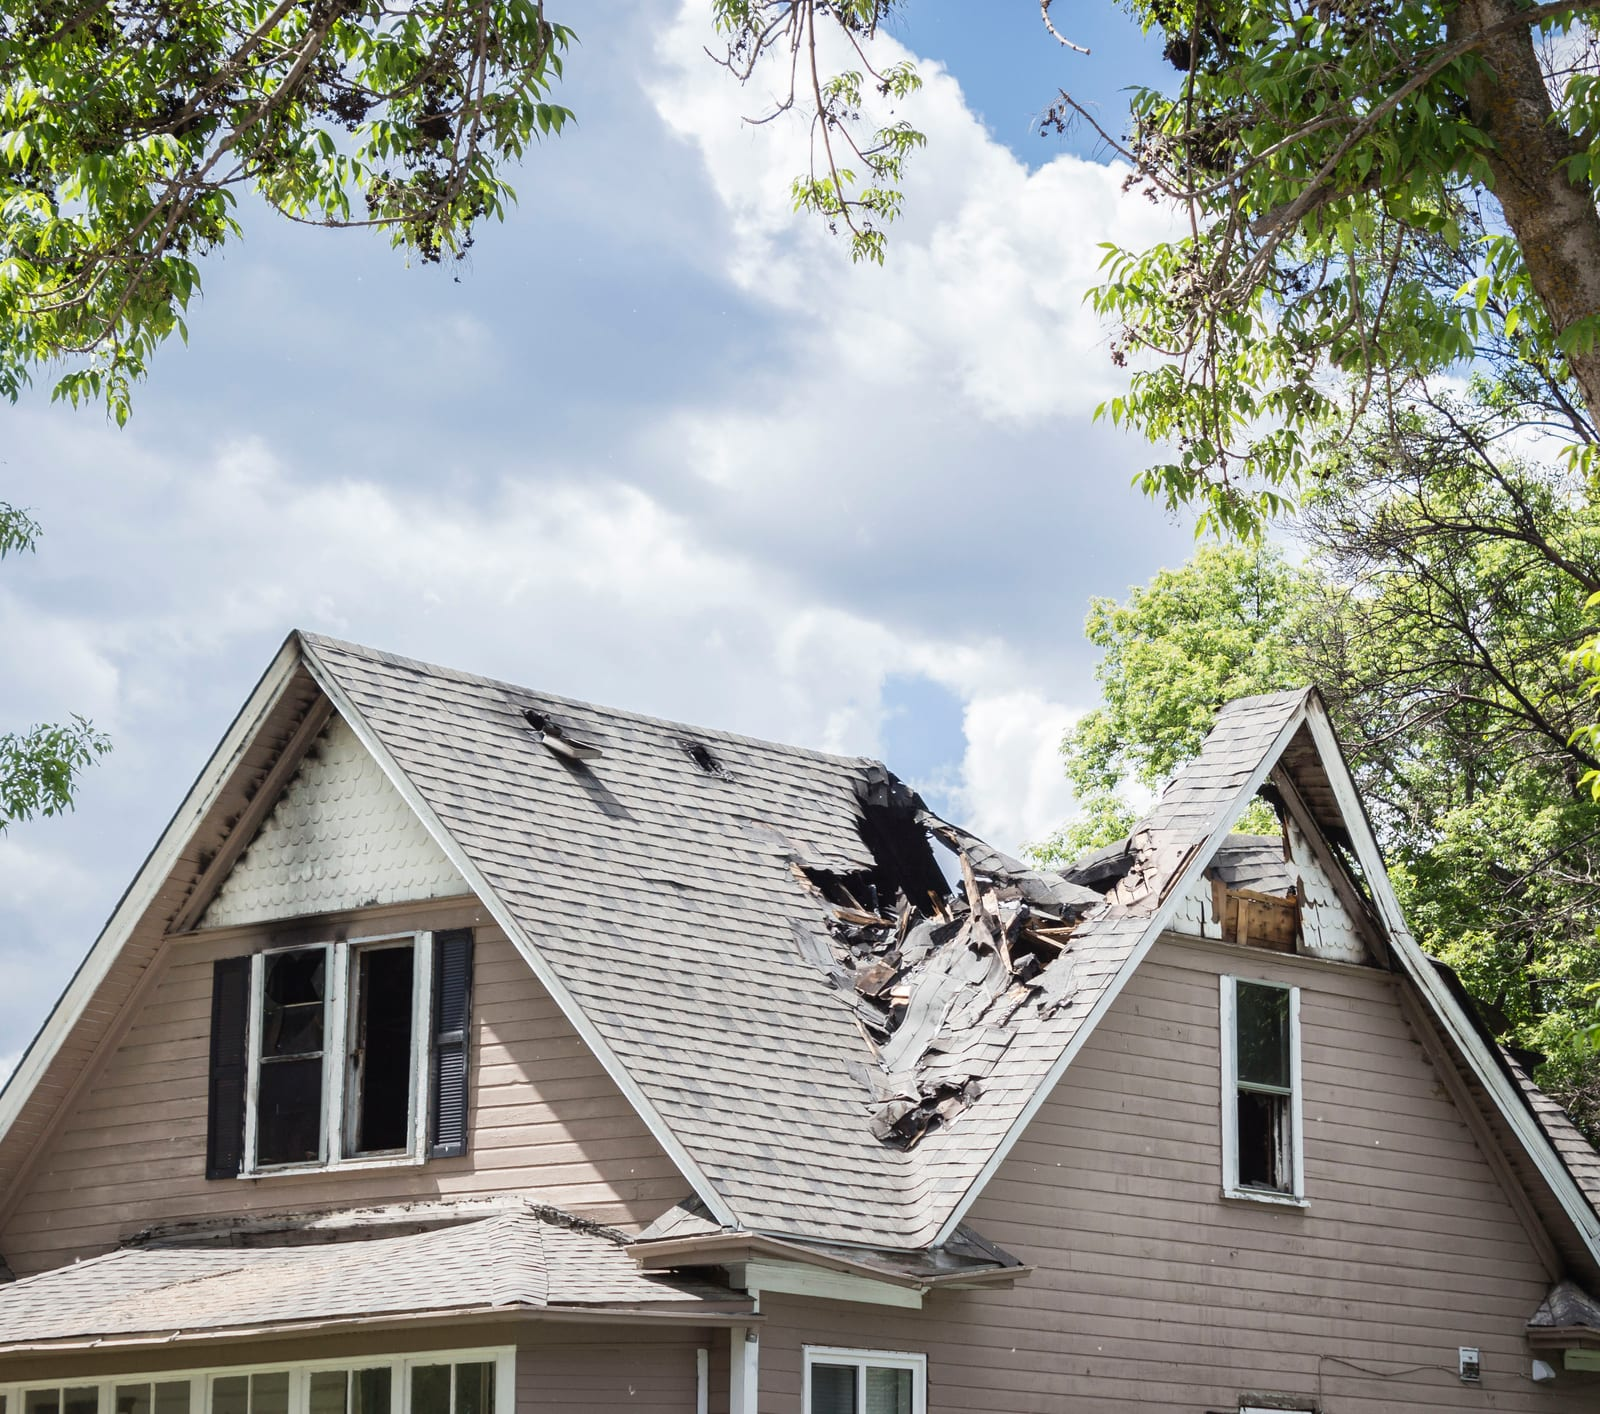 Does Home Insurance Cover Roof Leaks? - ValuePenguin